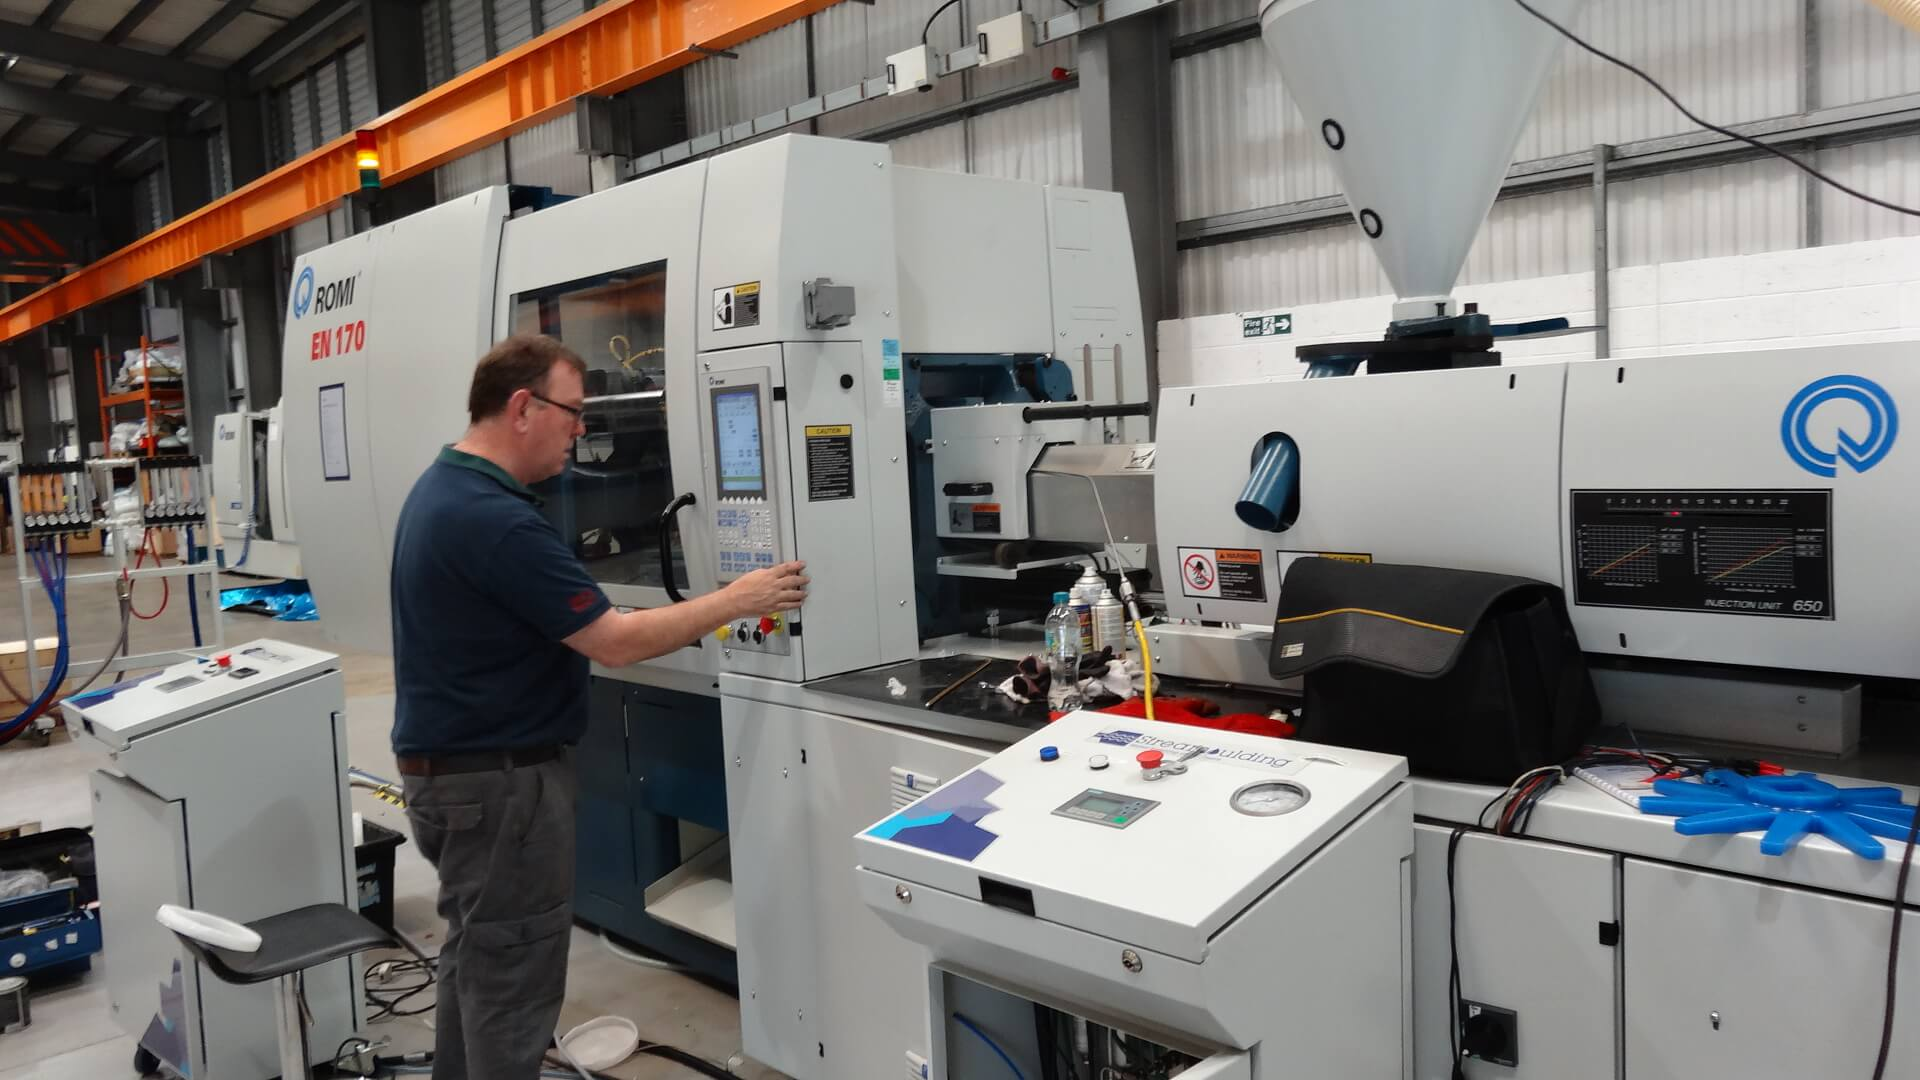 PolyGlobal starts Streamoulding trials at Romi UK